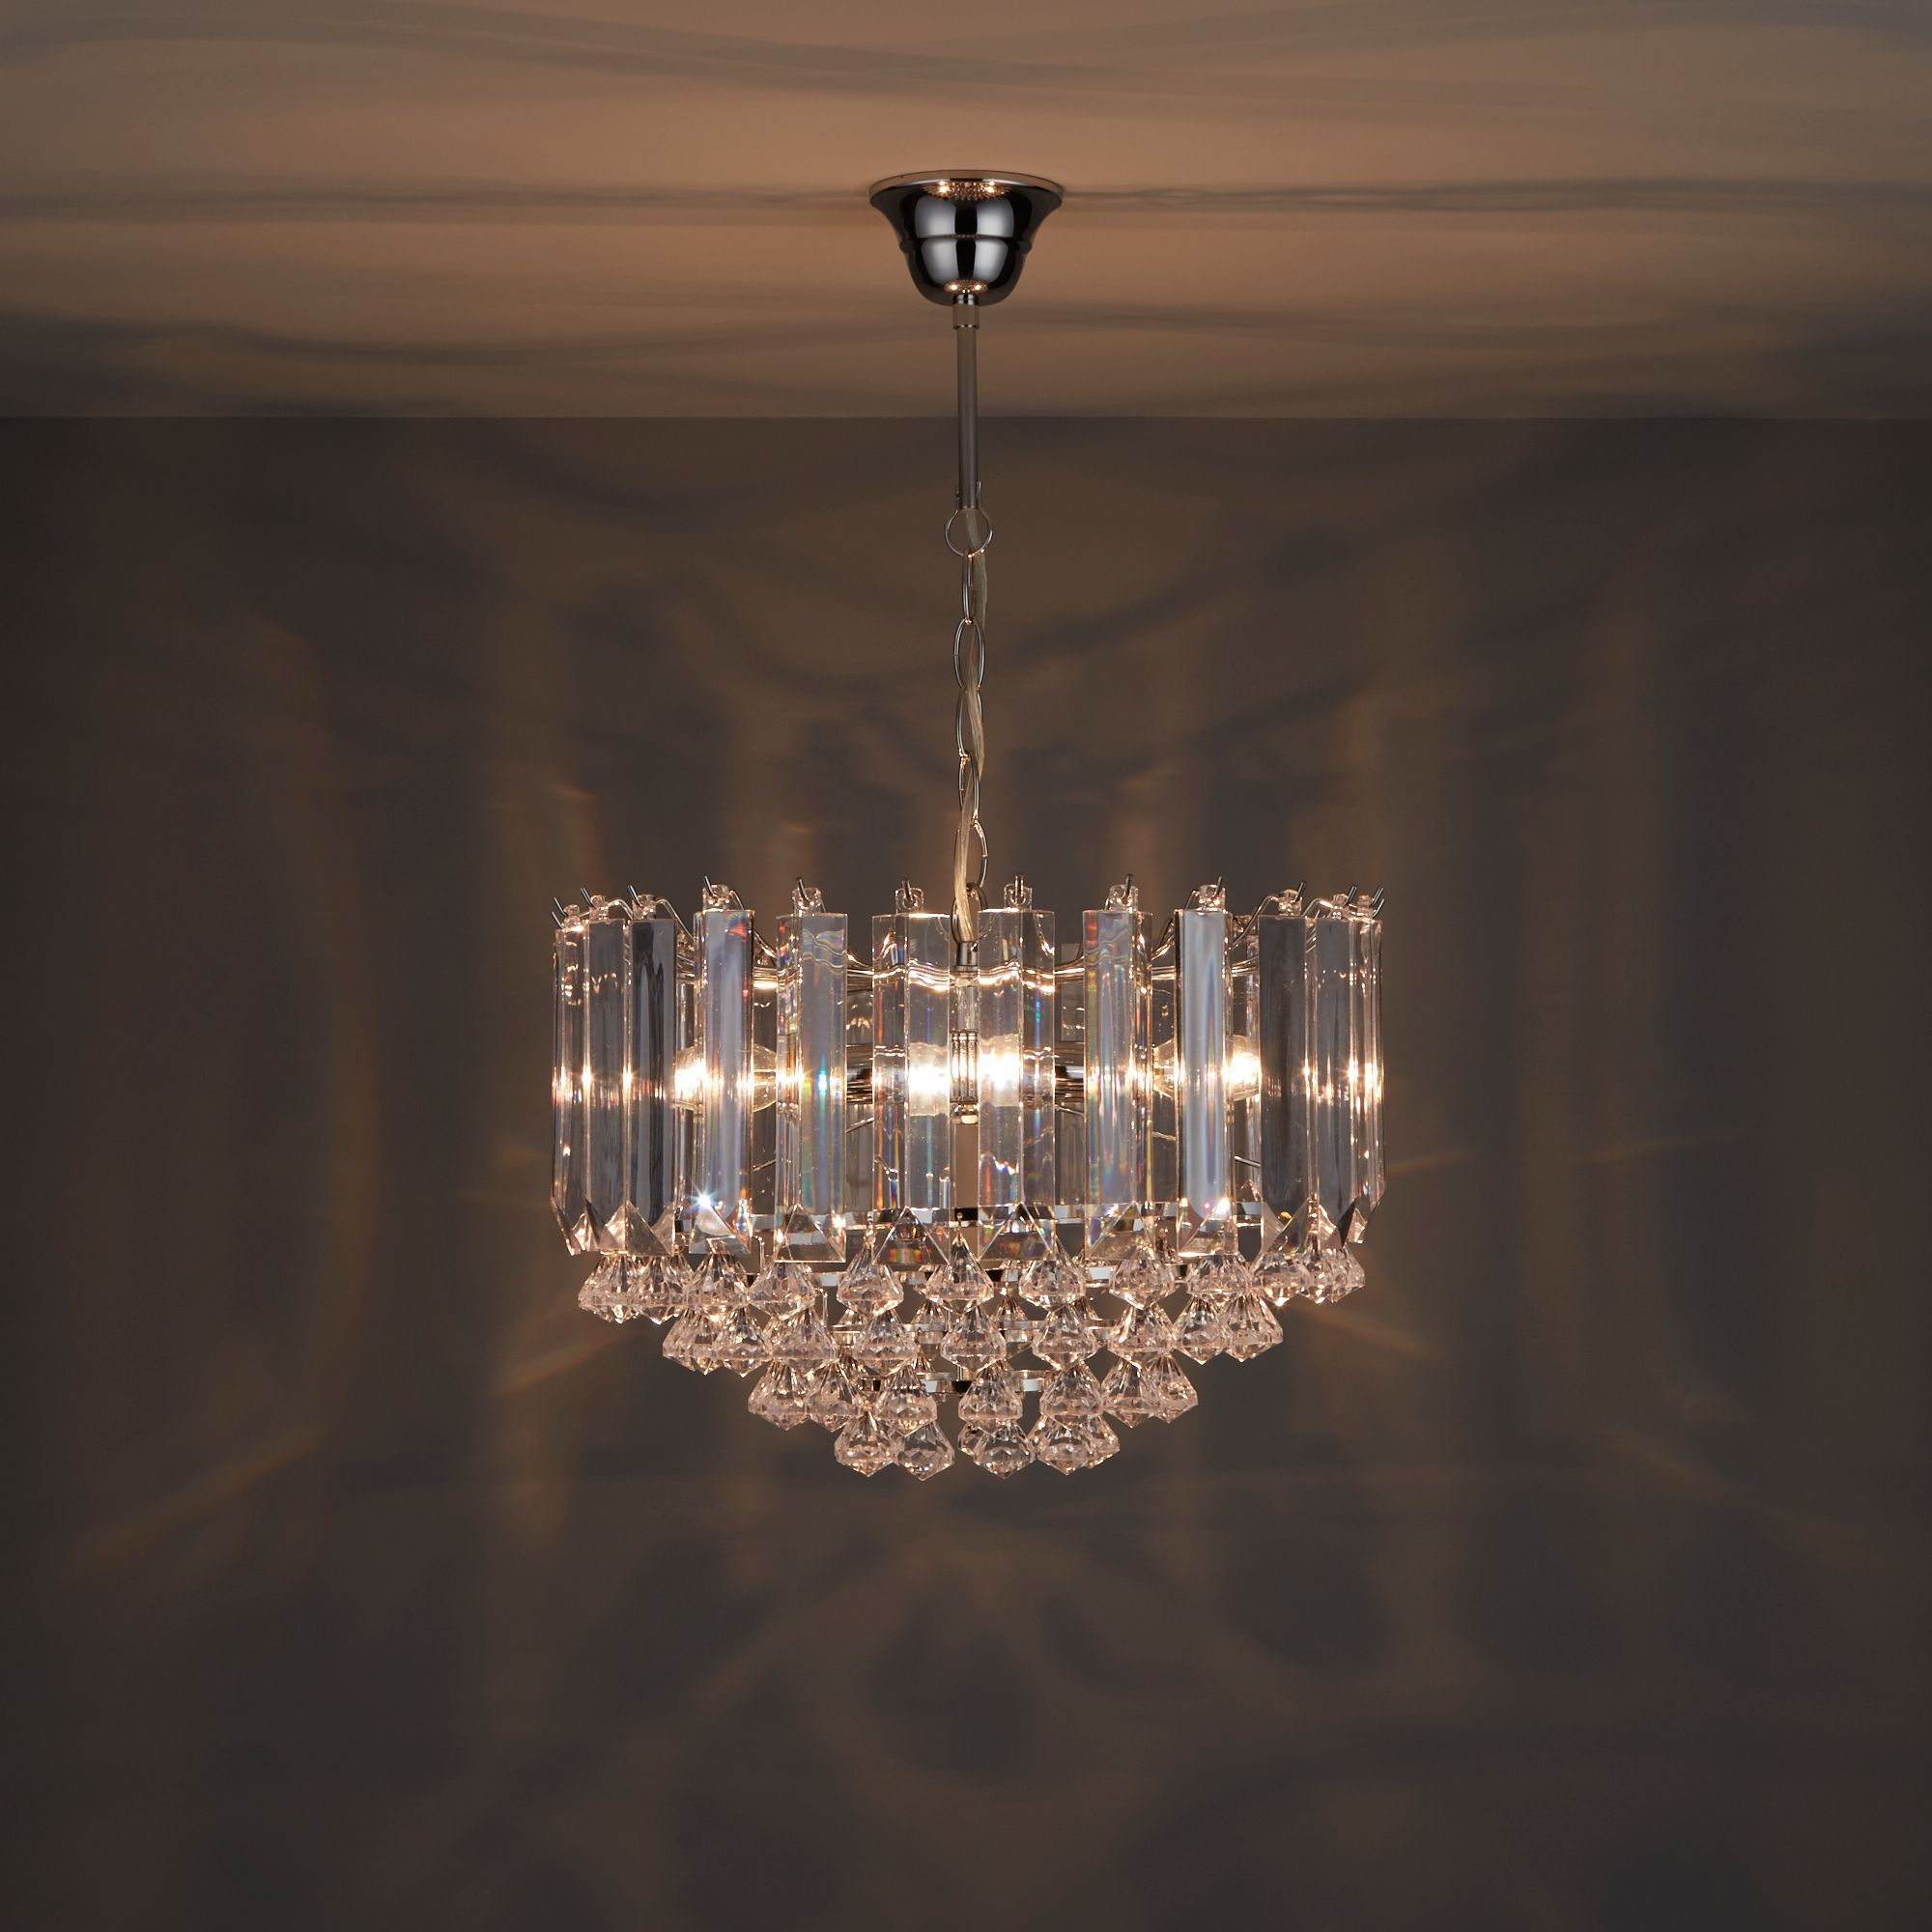 hand wholesale glass murano light blown italian style clear chandelier festival pendant longree dale ceiling product chihuly ceilings